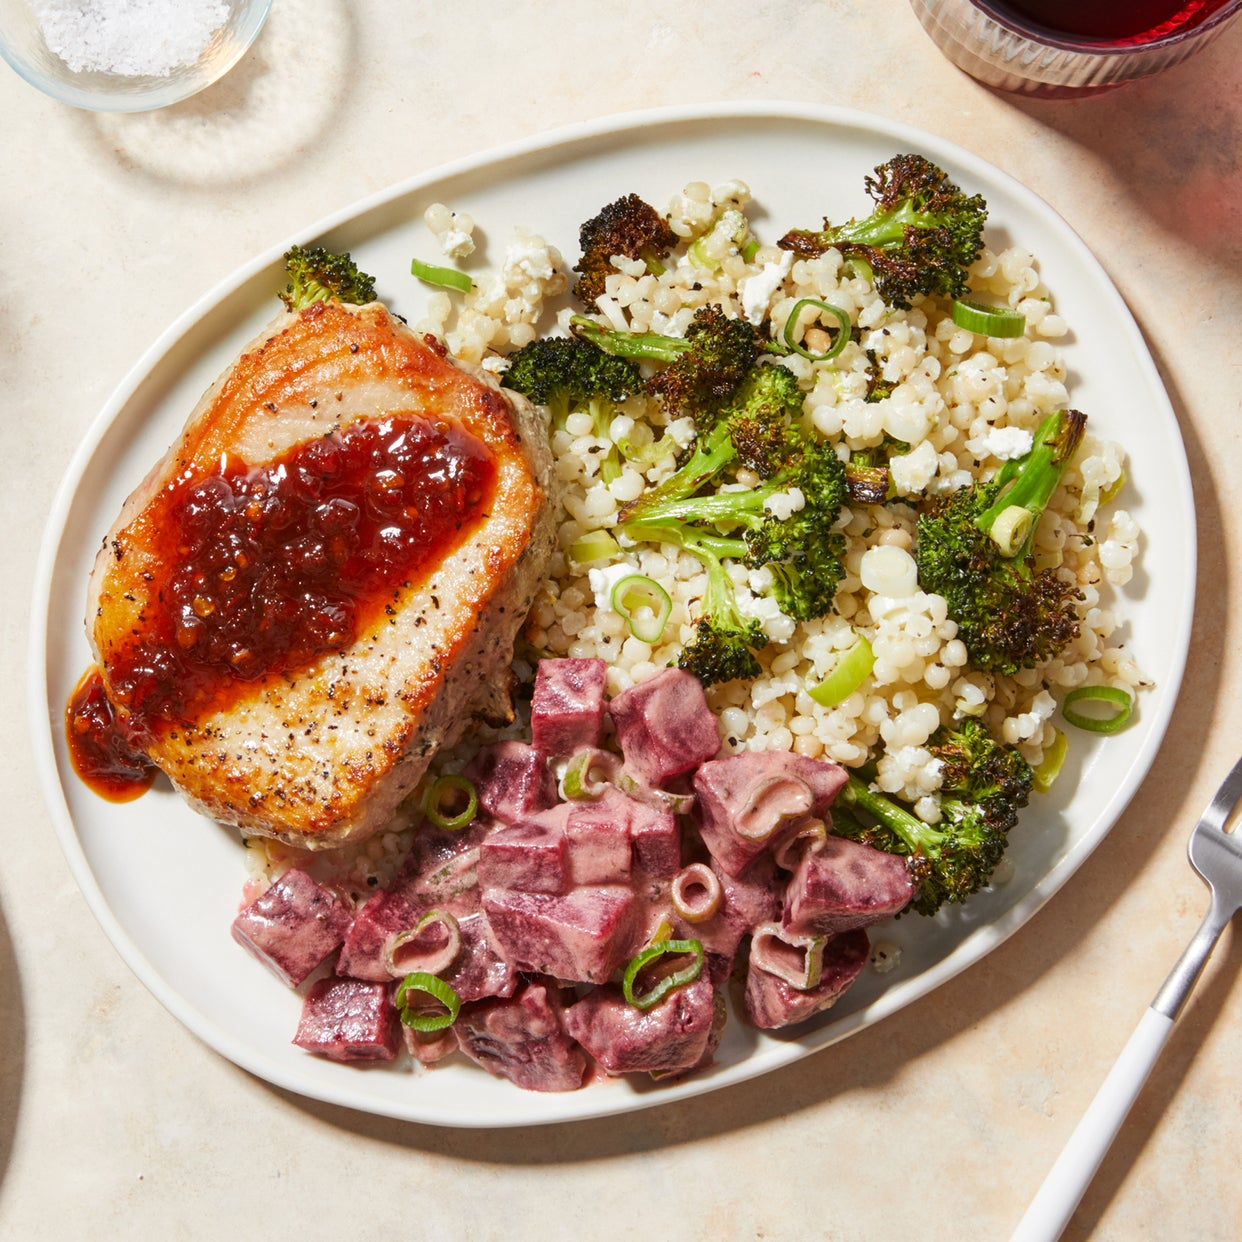 Maple-Harissa Pork Chops with Roasted Broccoli & Pearl Couscous